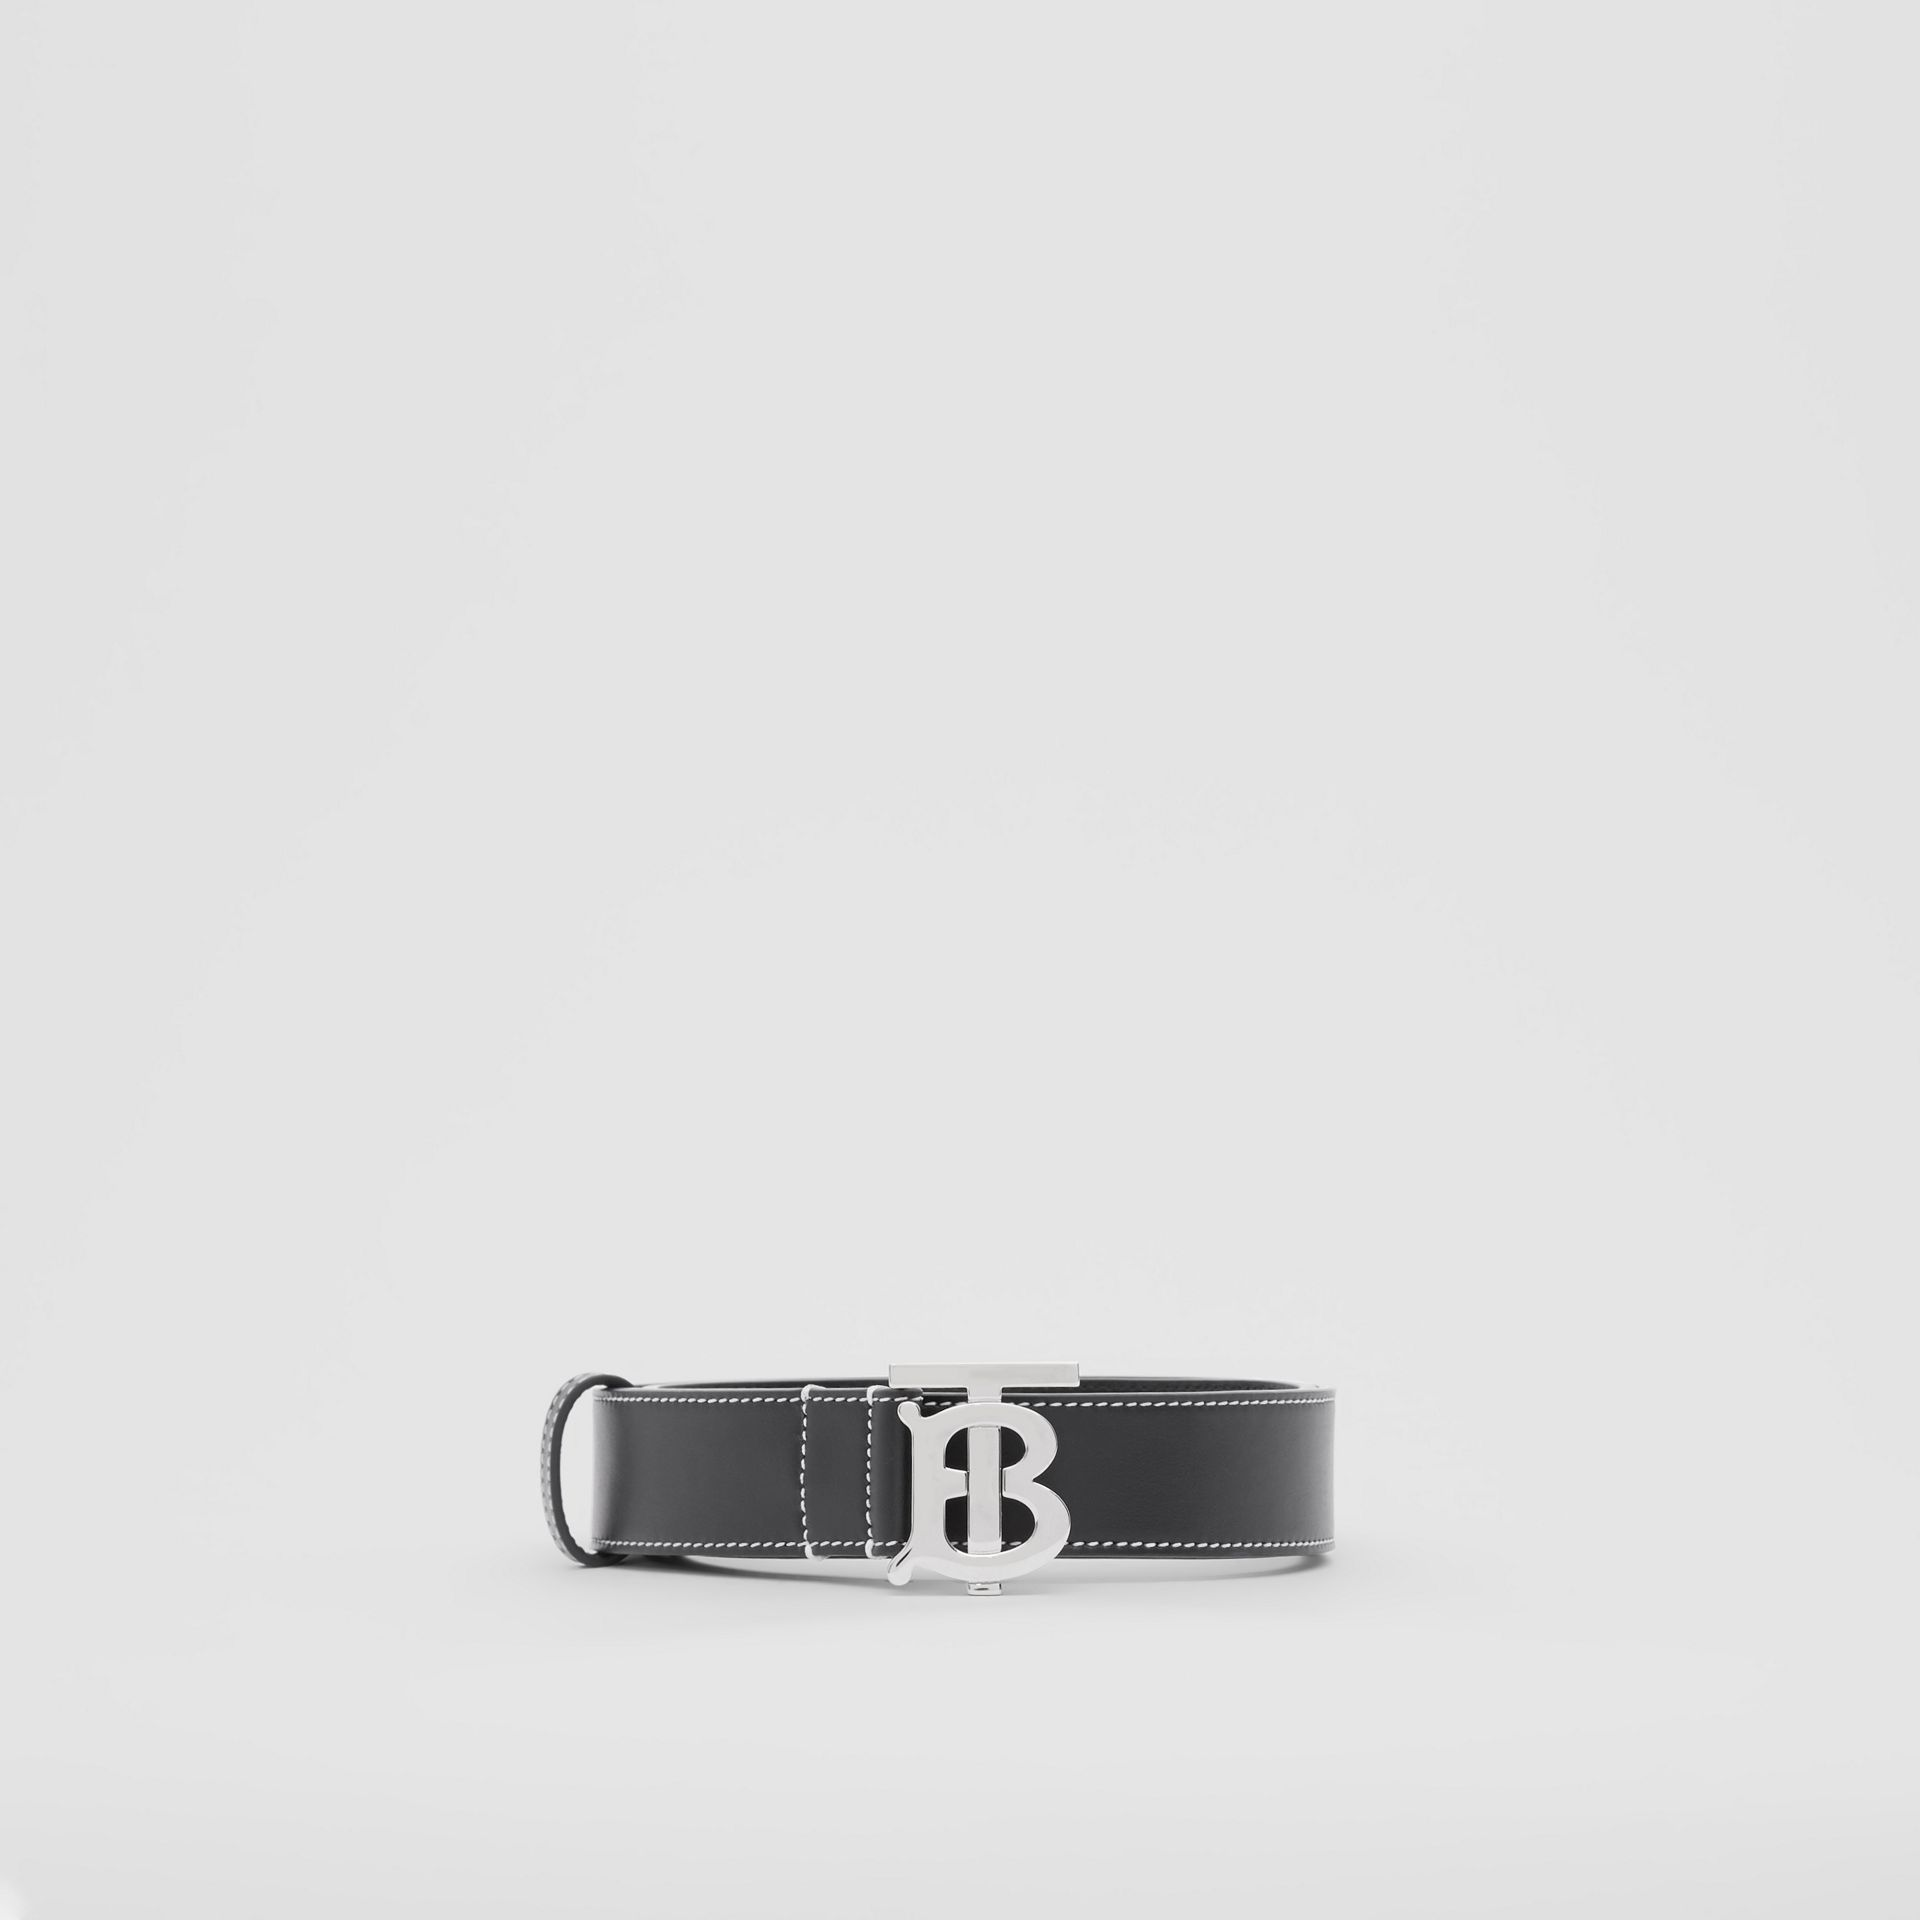 Monogram Motif Topstitched Leather Belt in Black - Men | Burberry - gallery image 3